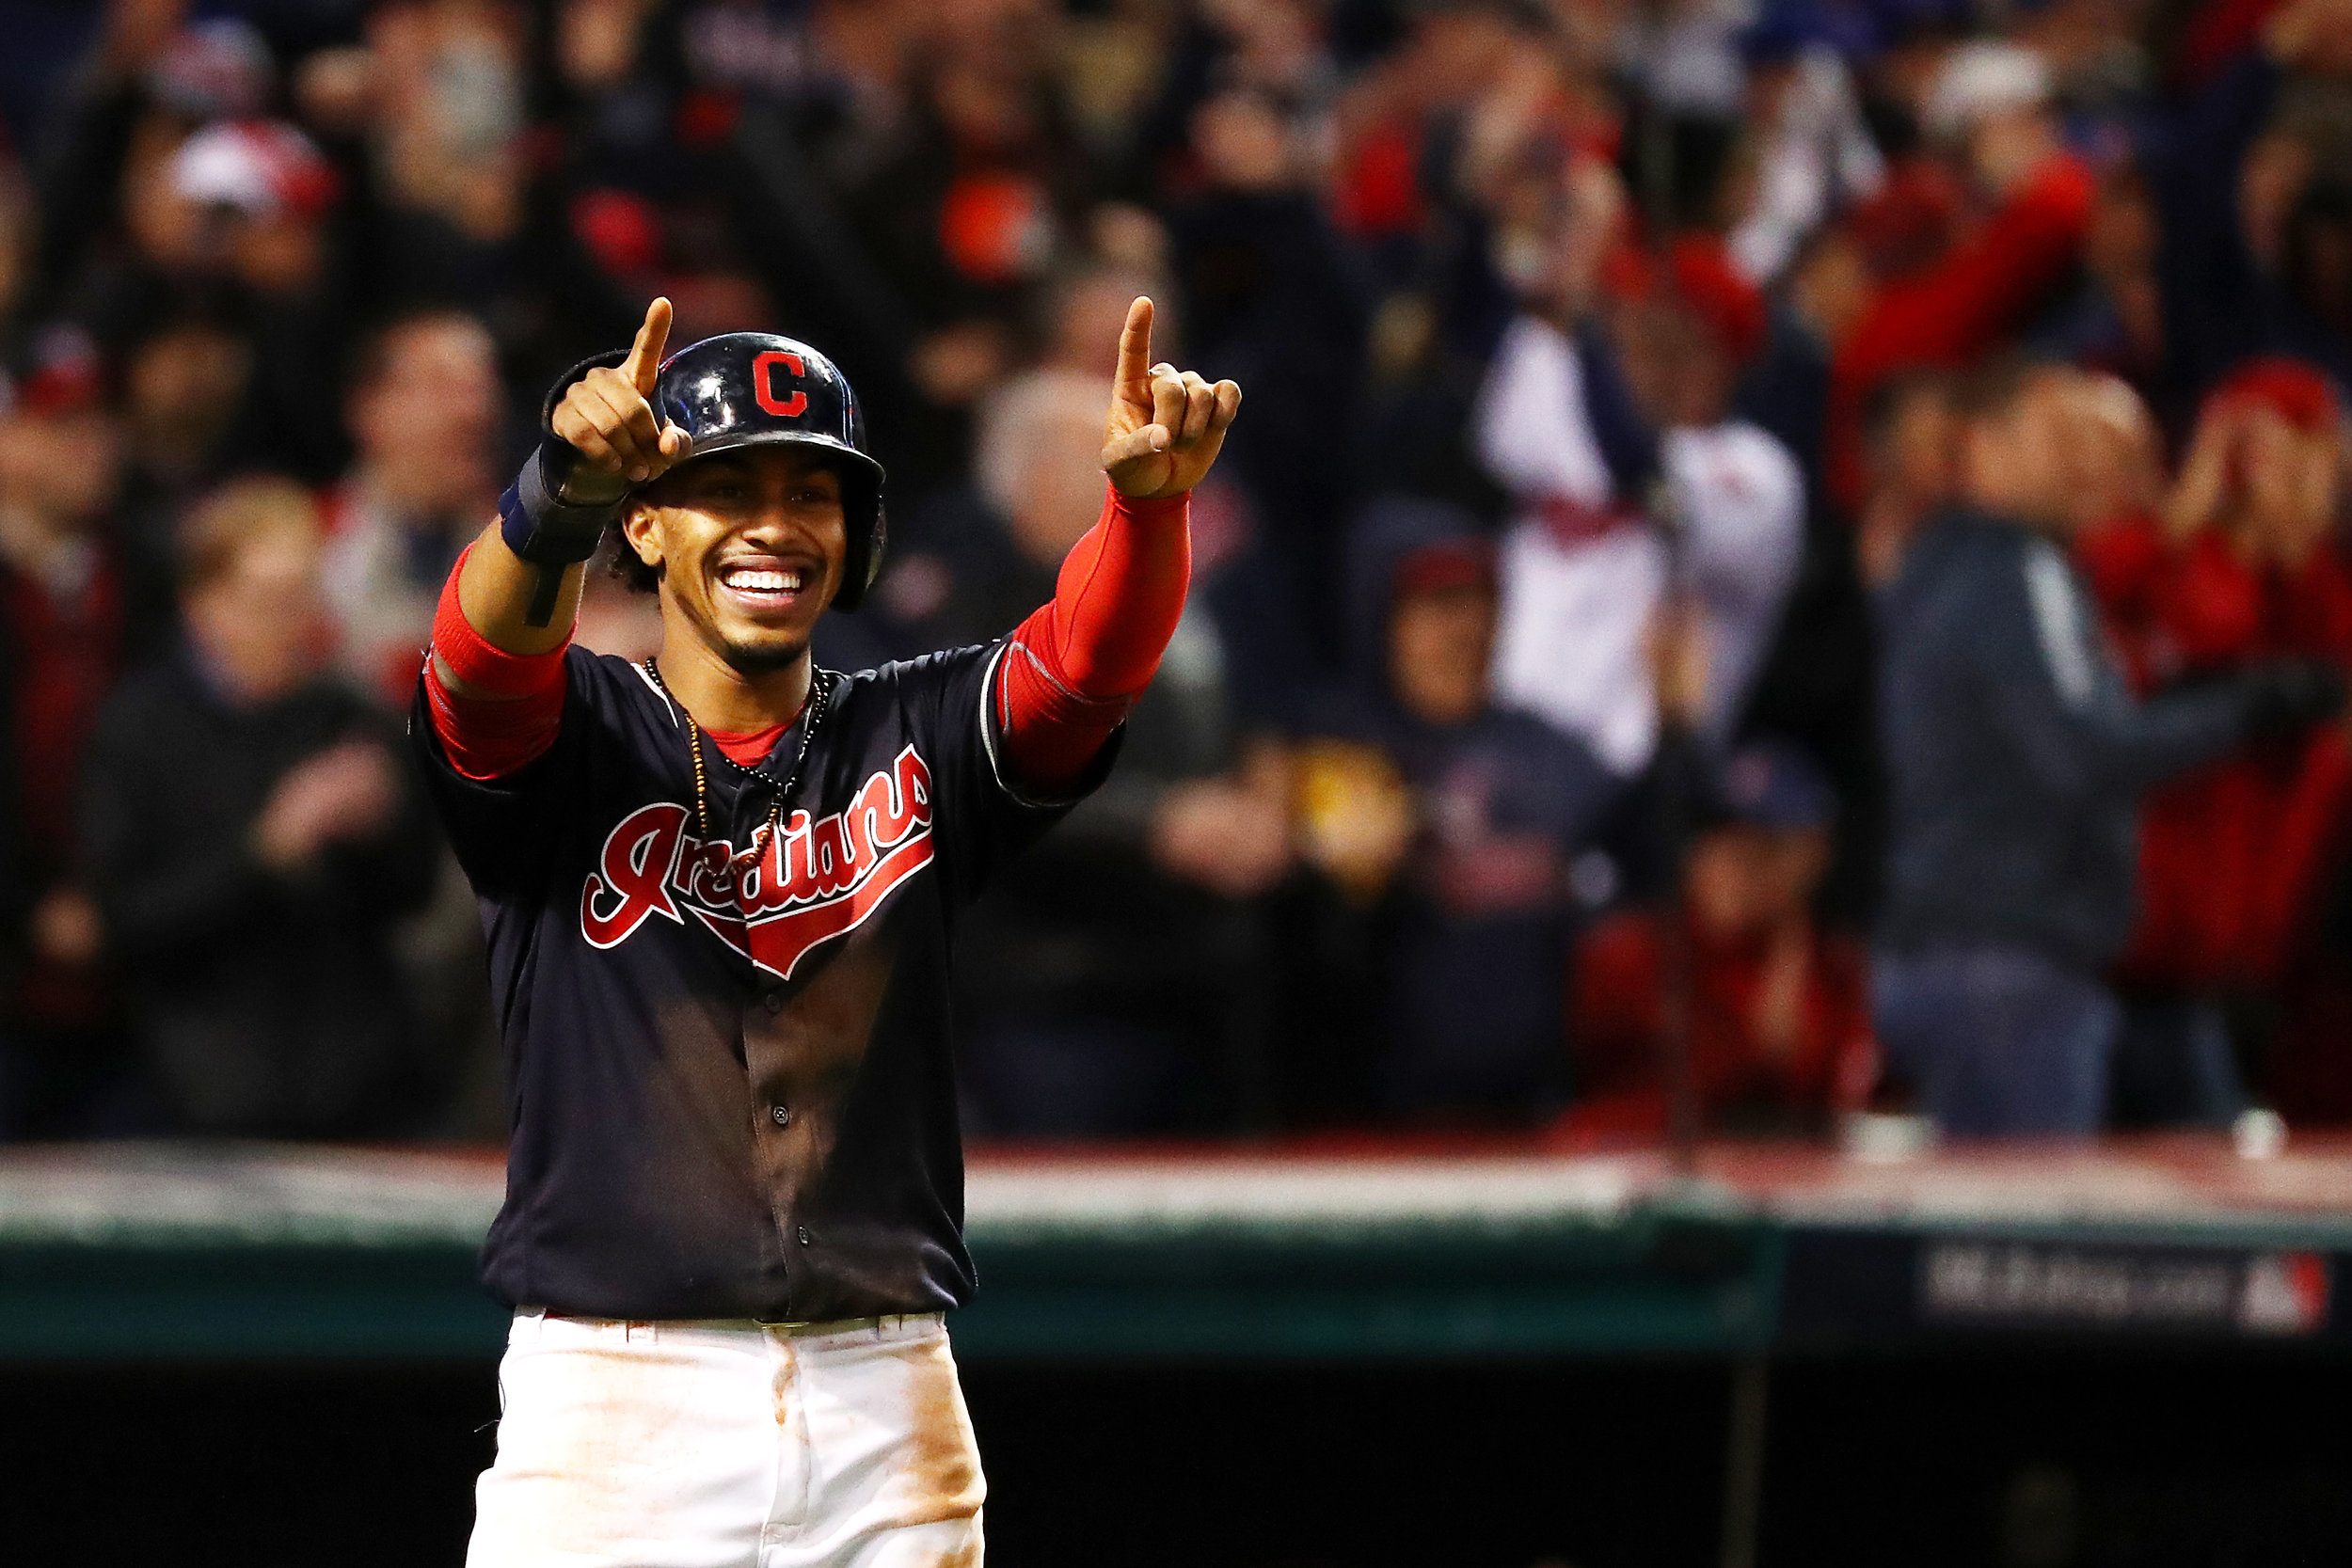 CLEVELAND, OH - OCTOBER 25: Francisco Lindor #12 of the Cleveland Indians celebrates after scoring a run during the first inning against the Chicago Cubs in Game One of the 2016 World Series at Progressive Field on October 25, 2016 in Cleveland, Ohio. (Photo by Tim Bradbury/Getty Images)